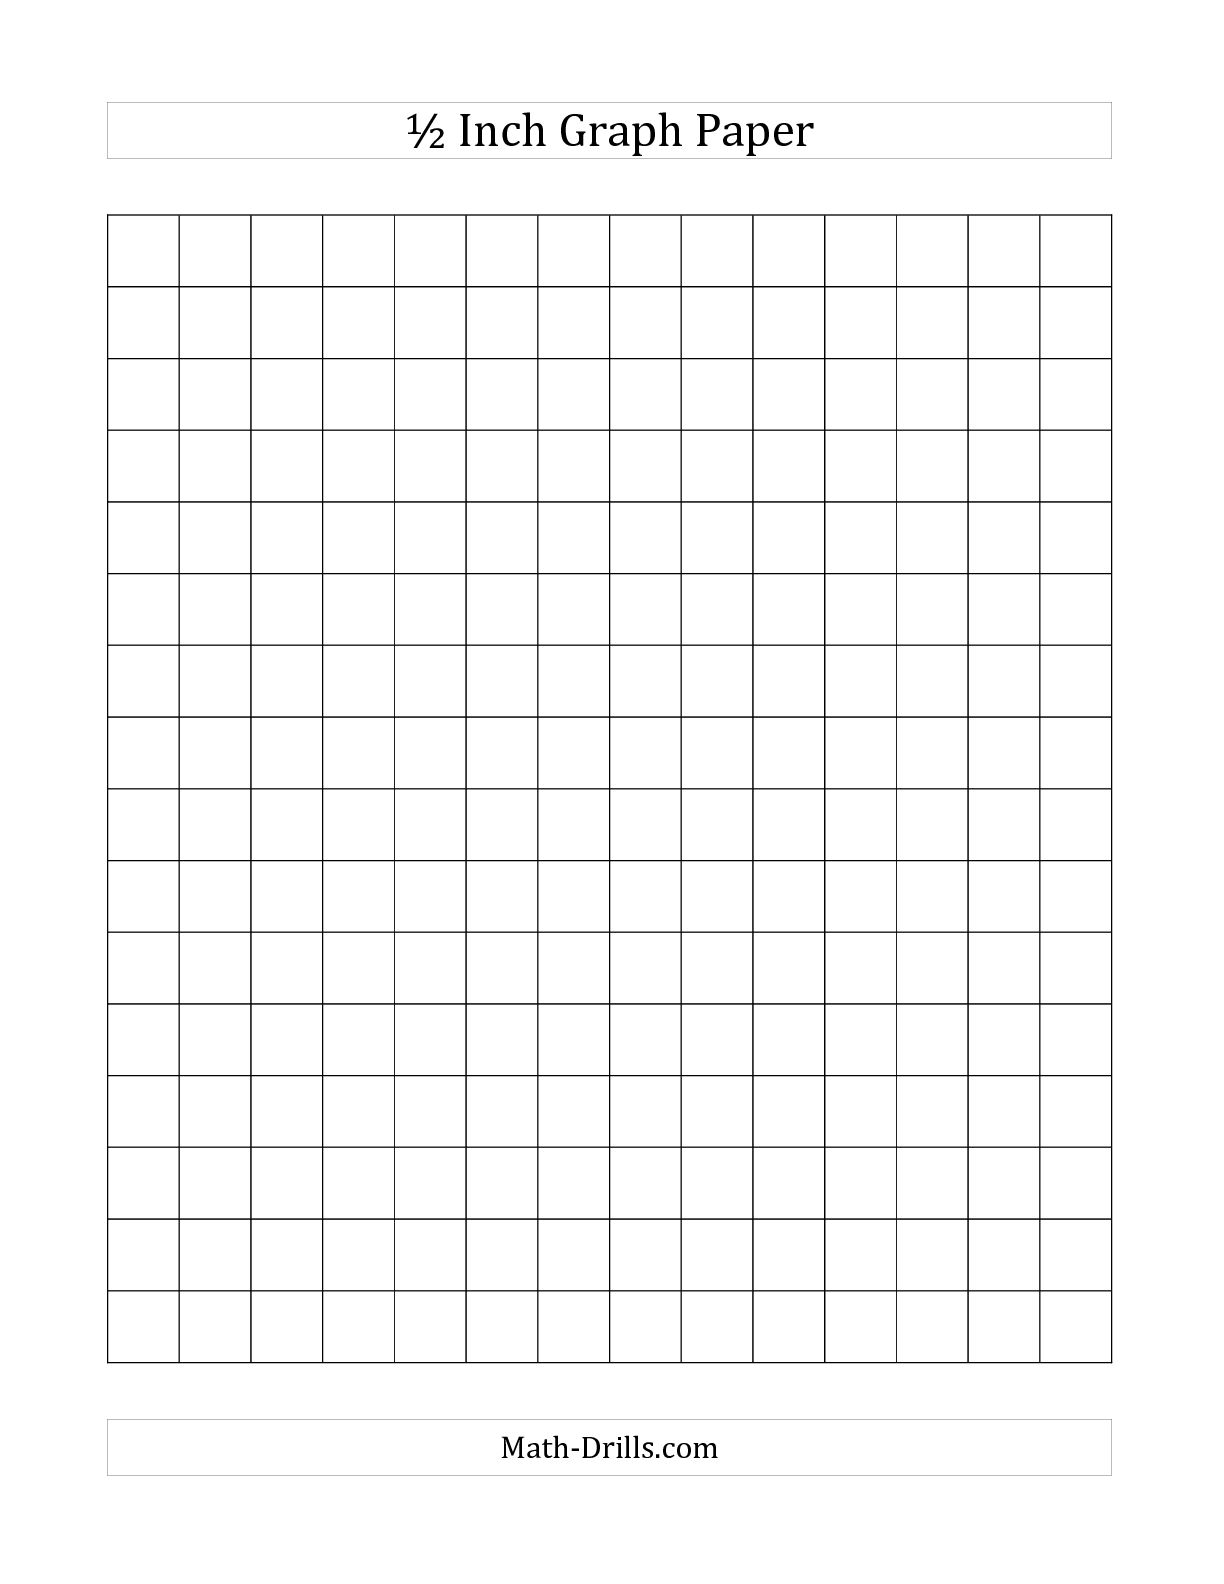 printable half inch grid paper images